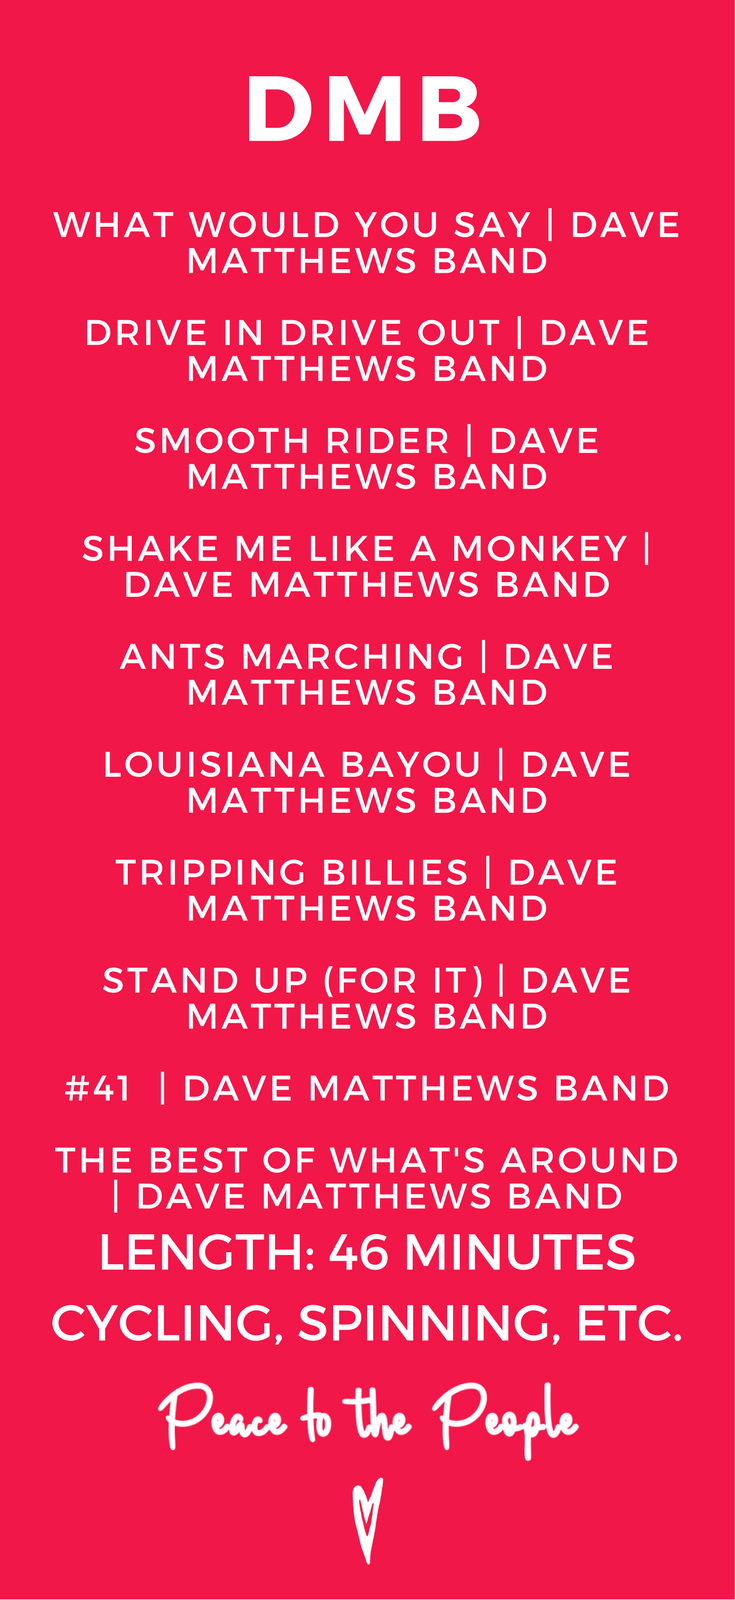 Dave Matthews Band Spinning Playlists Peace to the People